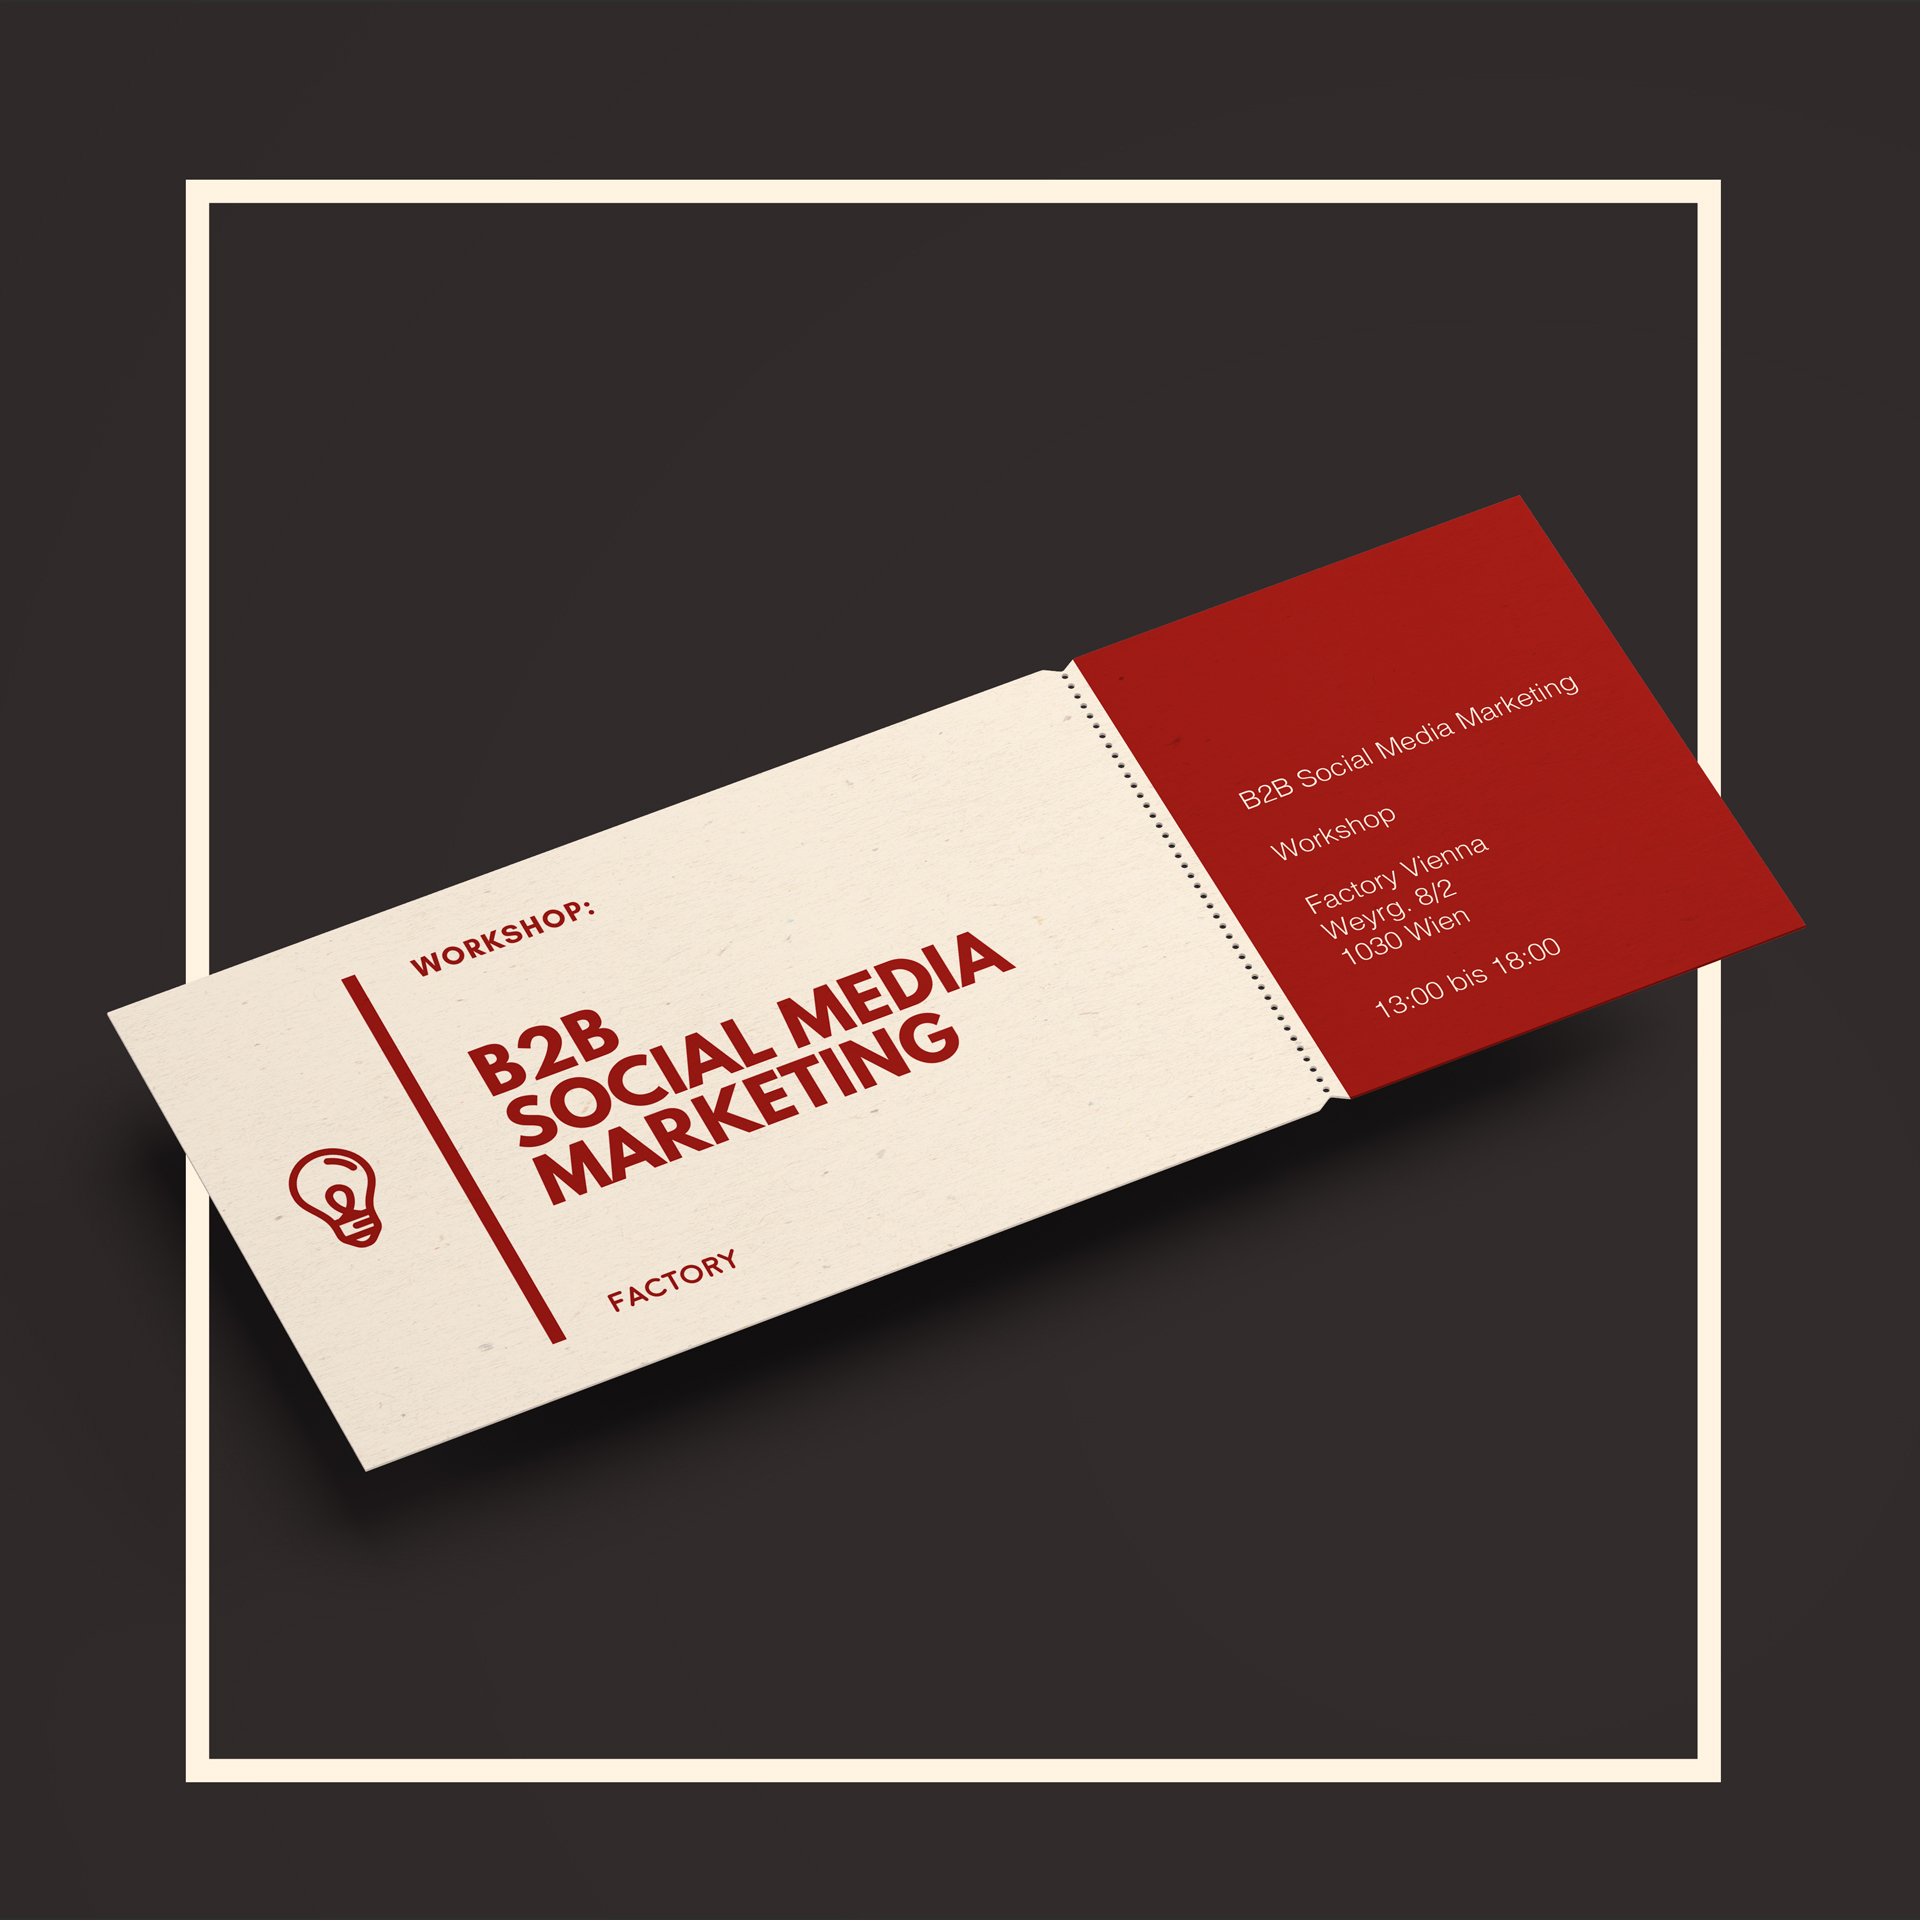 B2B_Social_Media_workshop_ticket1